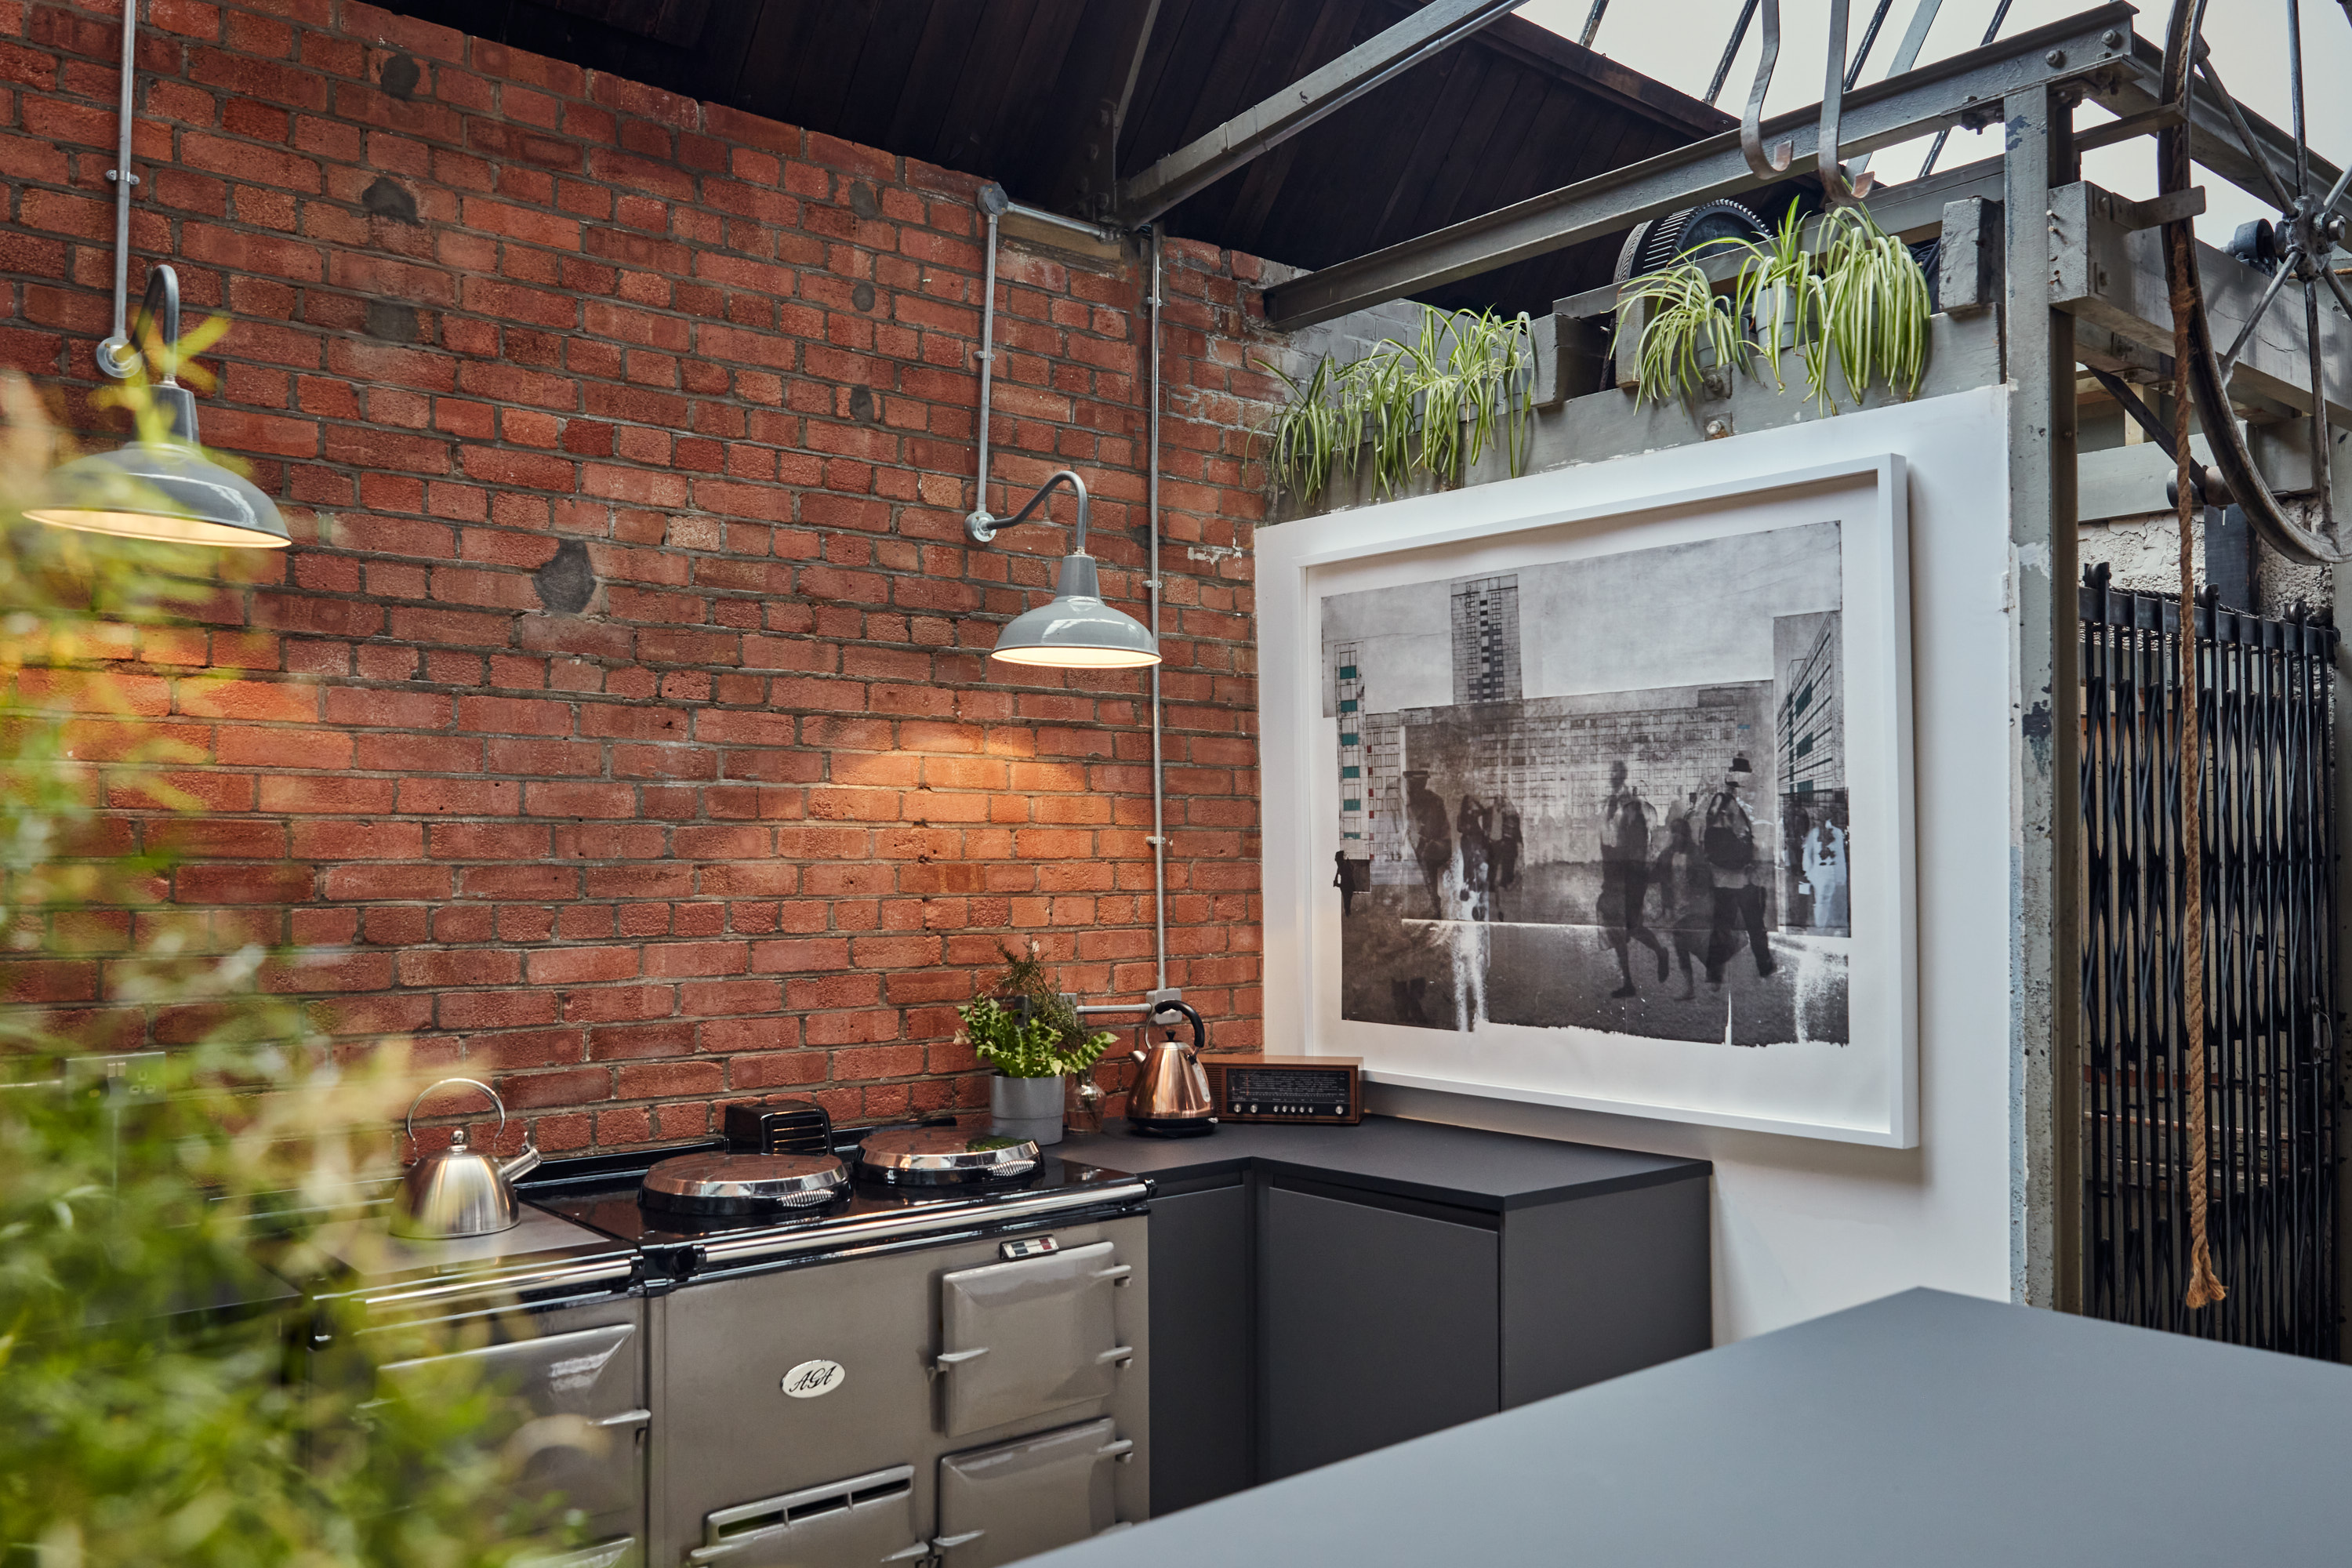 studio kitchen fitted with Aga oven